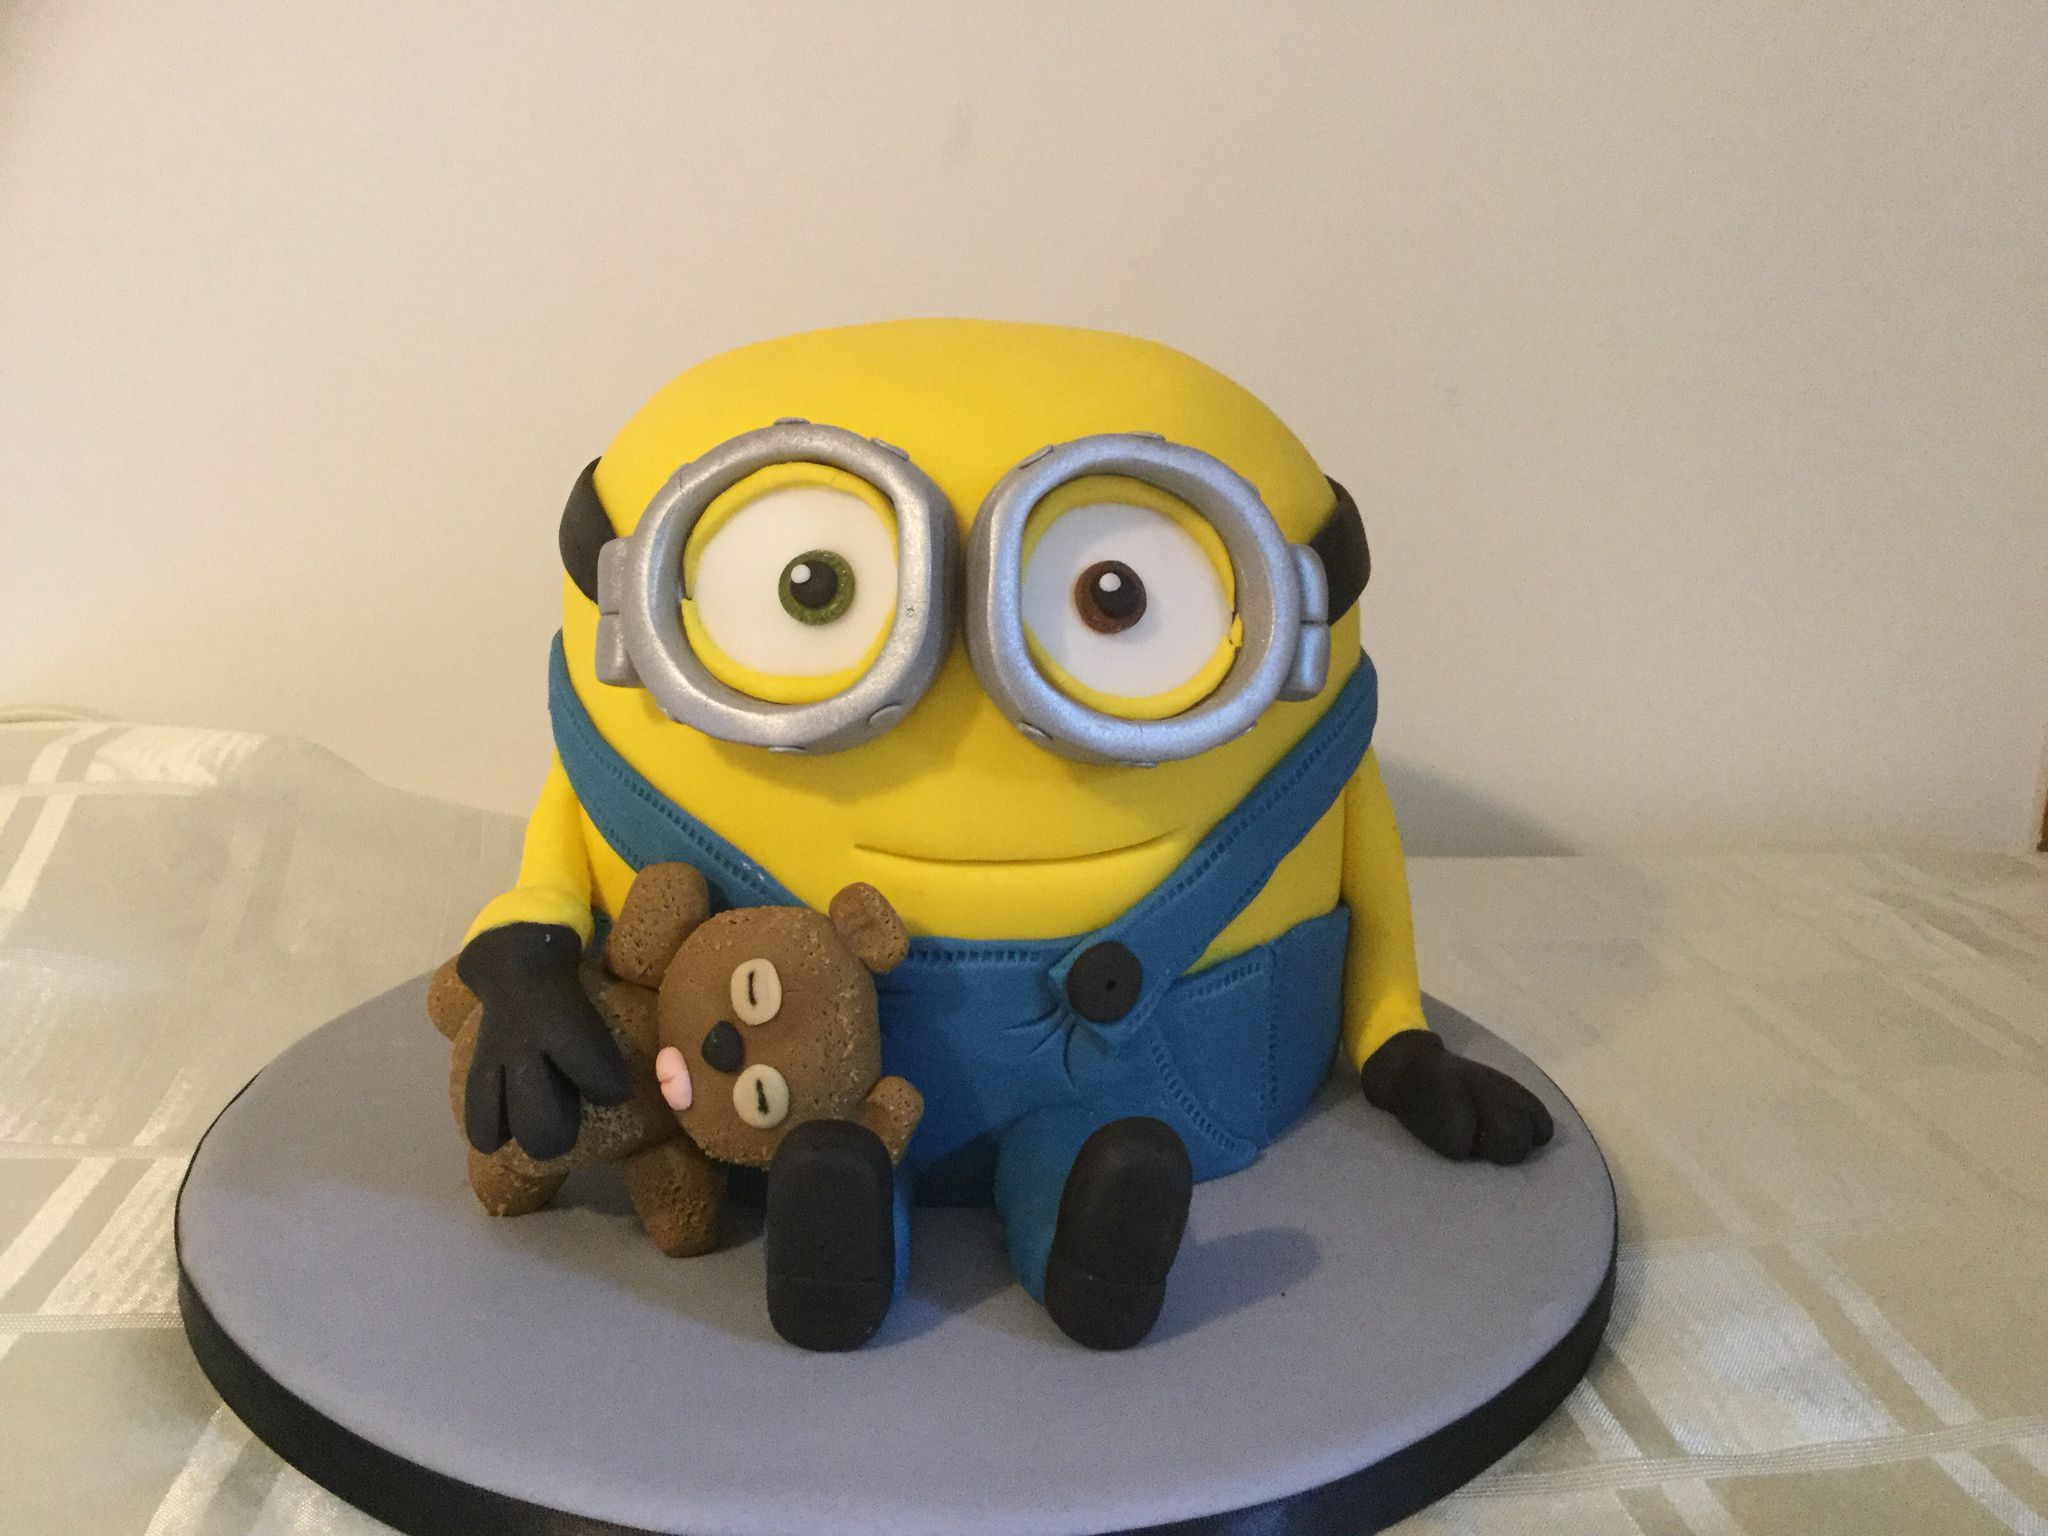 Minion Kuchen Rezept Bob The Minion Cake With His Teddy Torten Minion